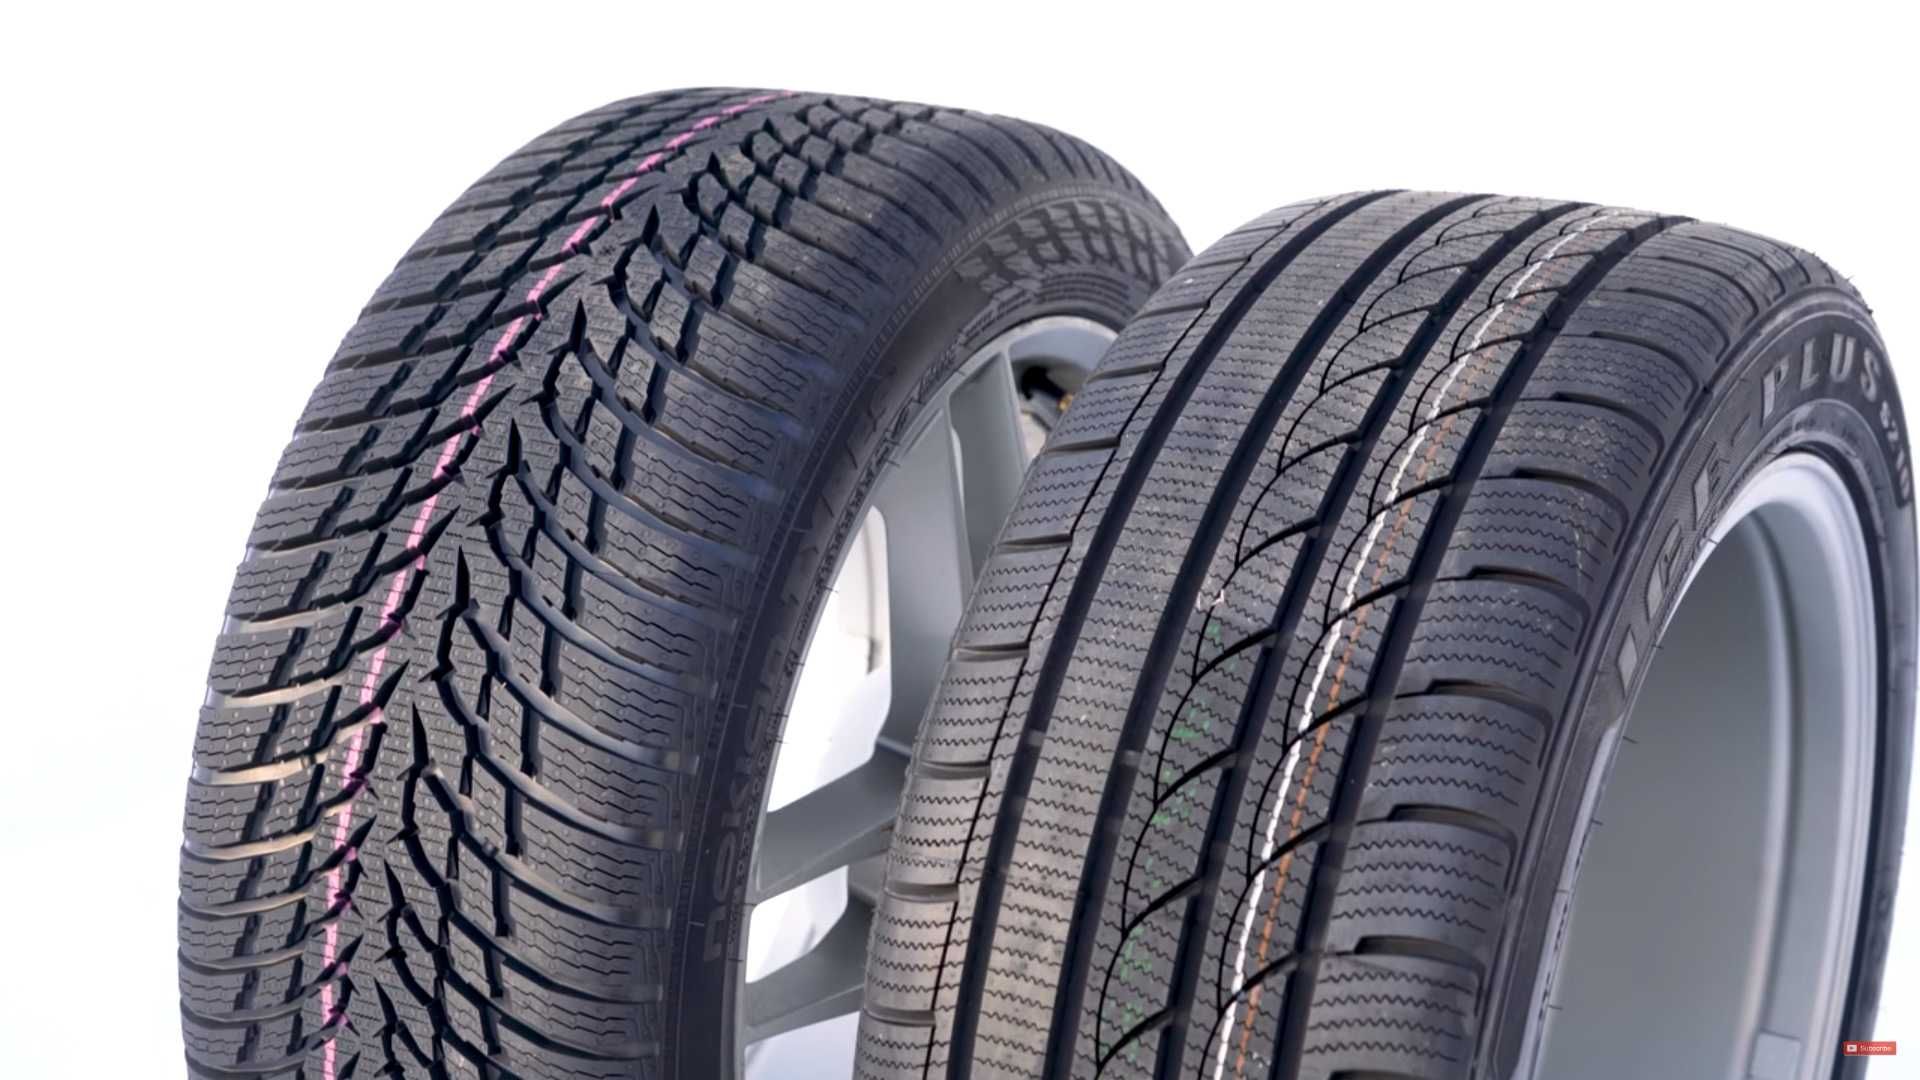 Tires For Cheap >> Video Shows Differences Between Cheap And Expensive Snow Tires